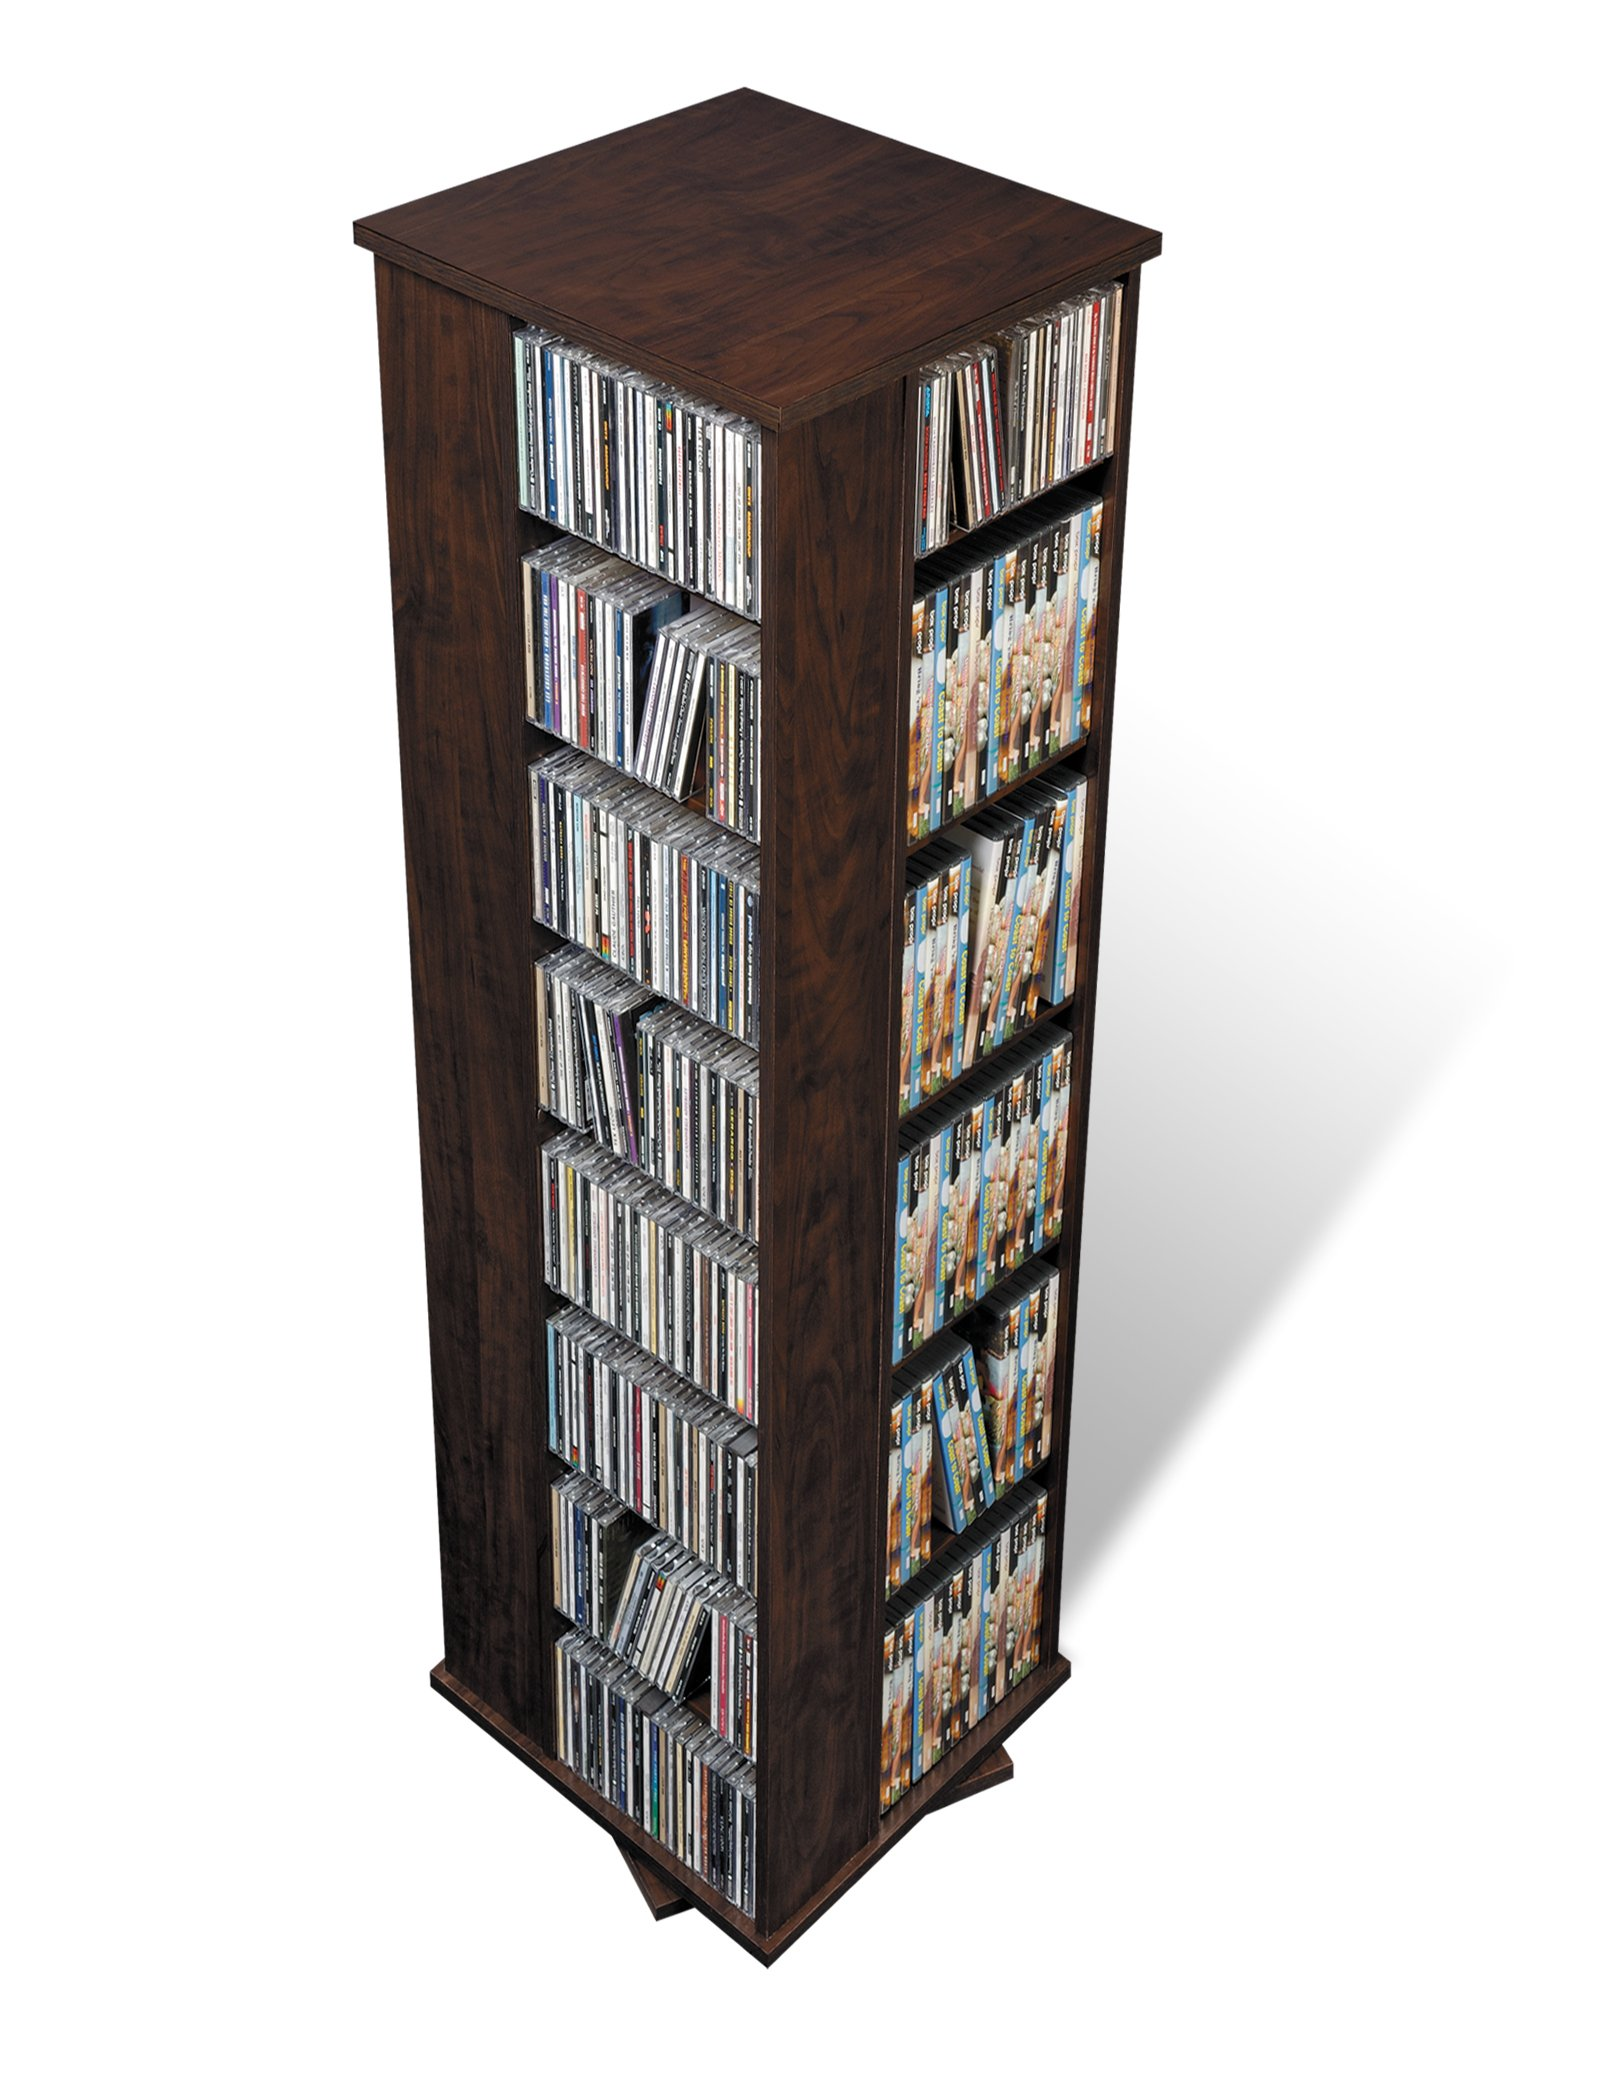 Prepac Large Four-Sided Spinning Tower Storage Cabinet, Espresso by Prepac